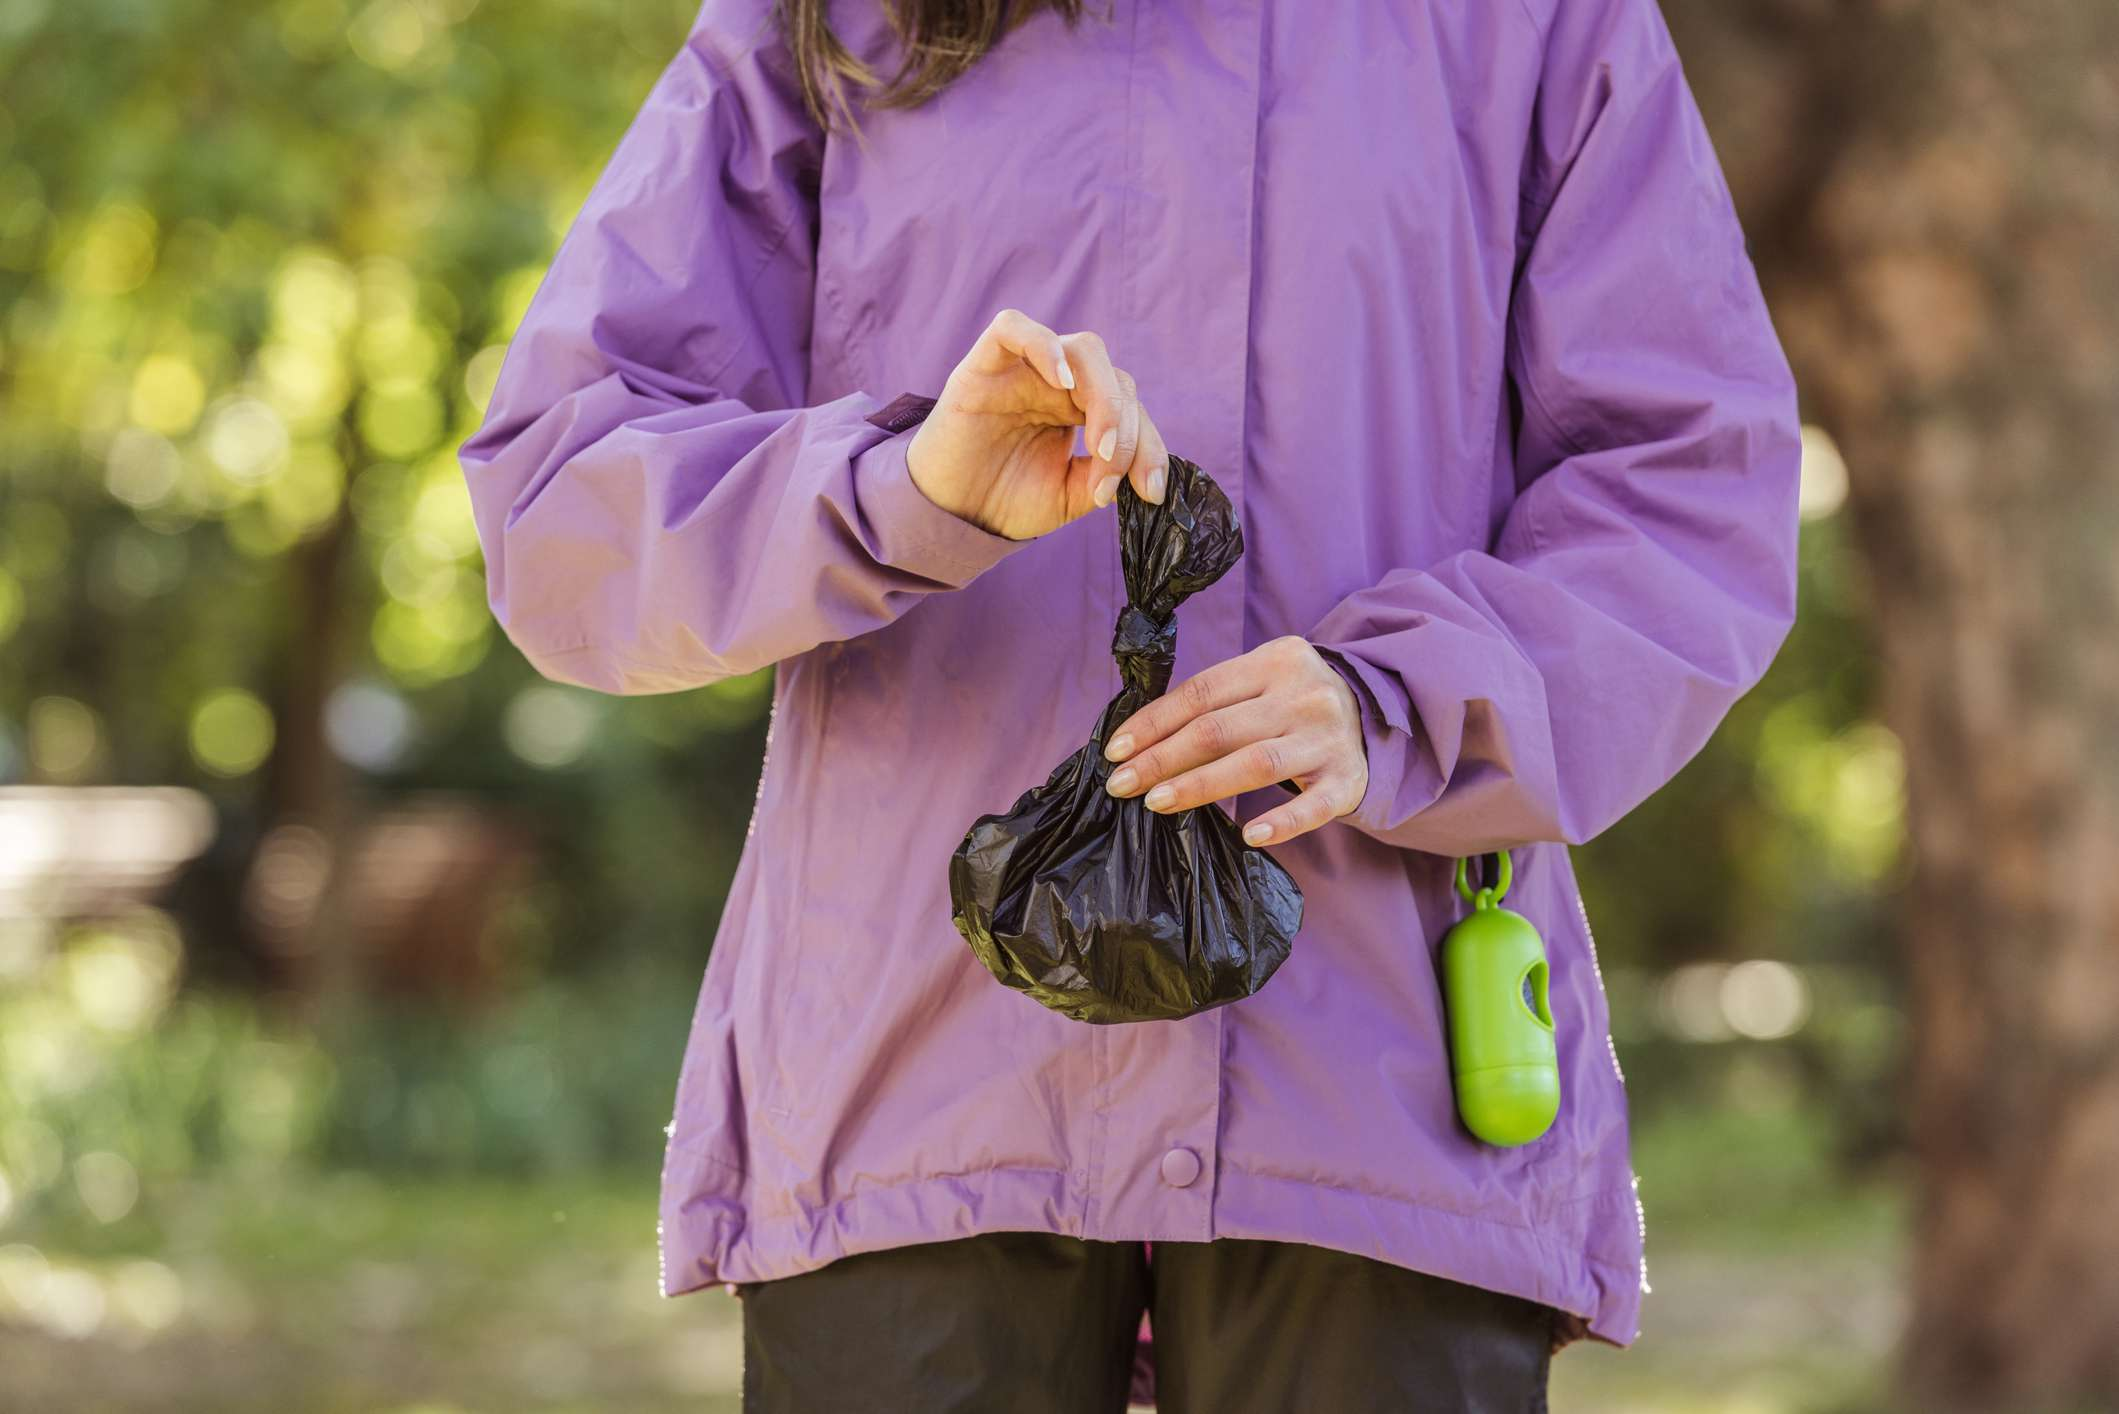 Neck down shot of woman in purple jacket with doggie poop bag and holder.